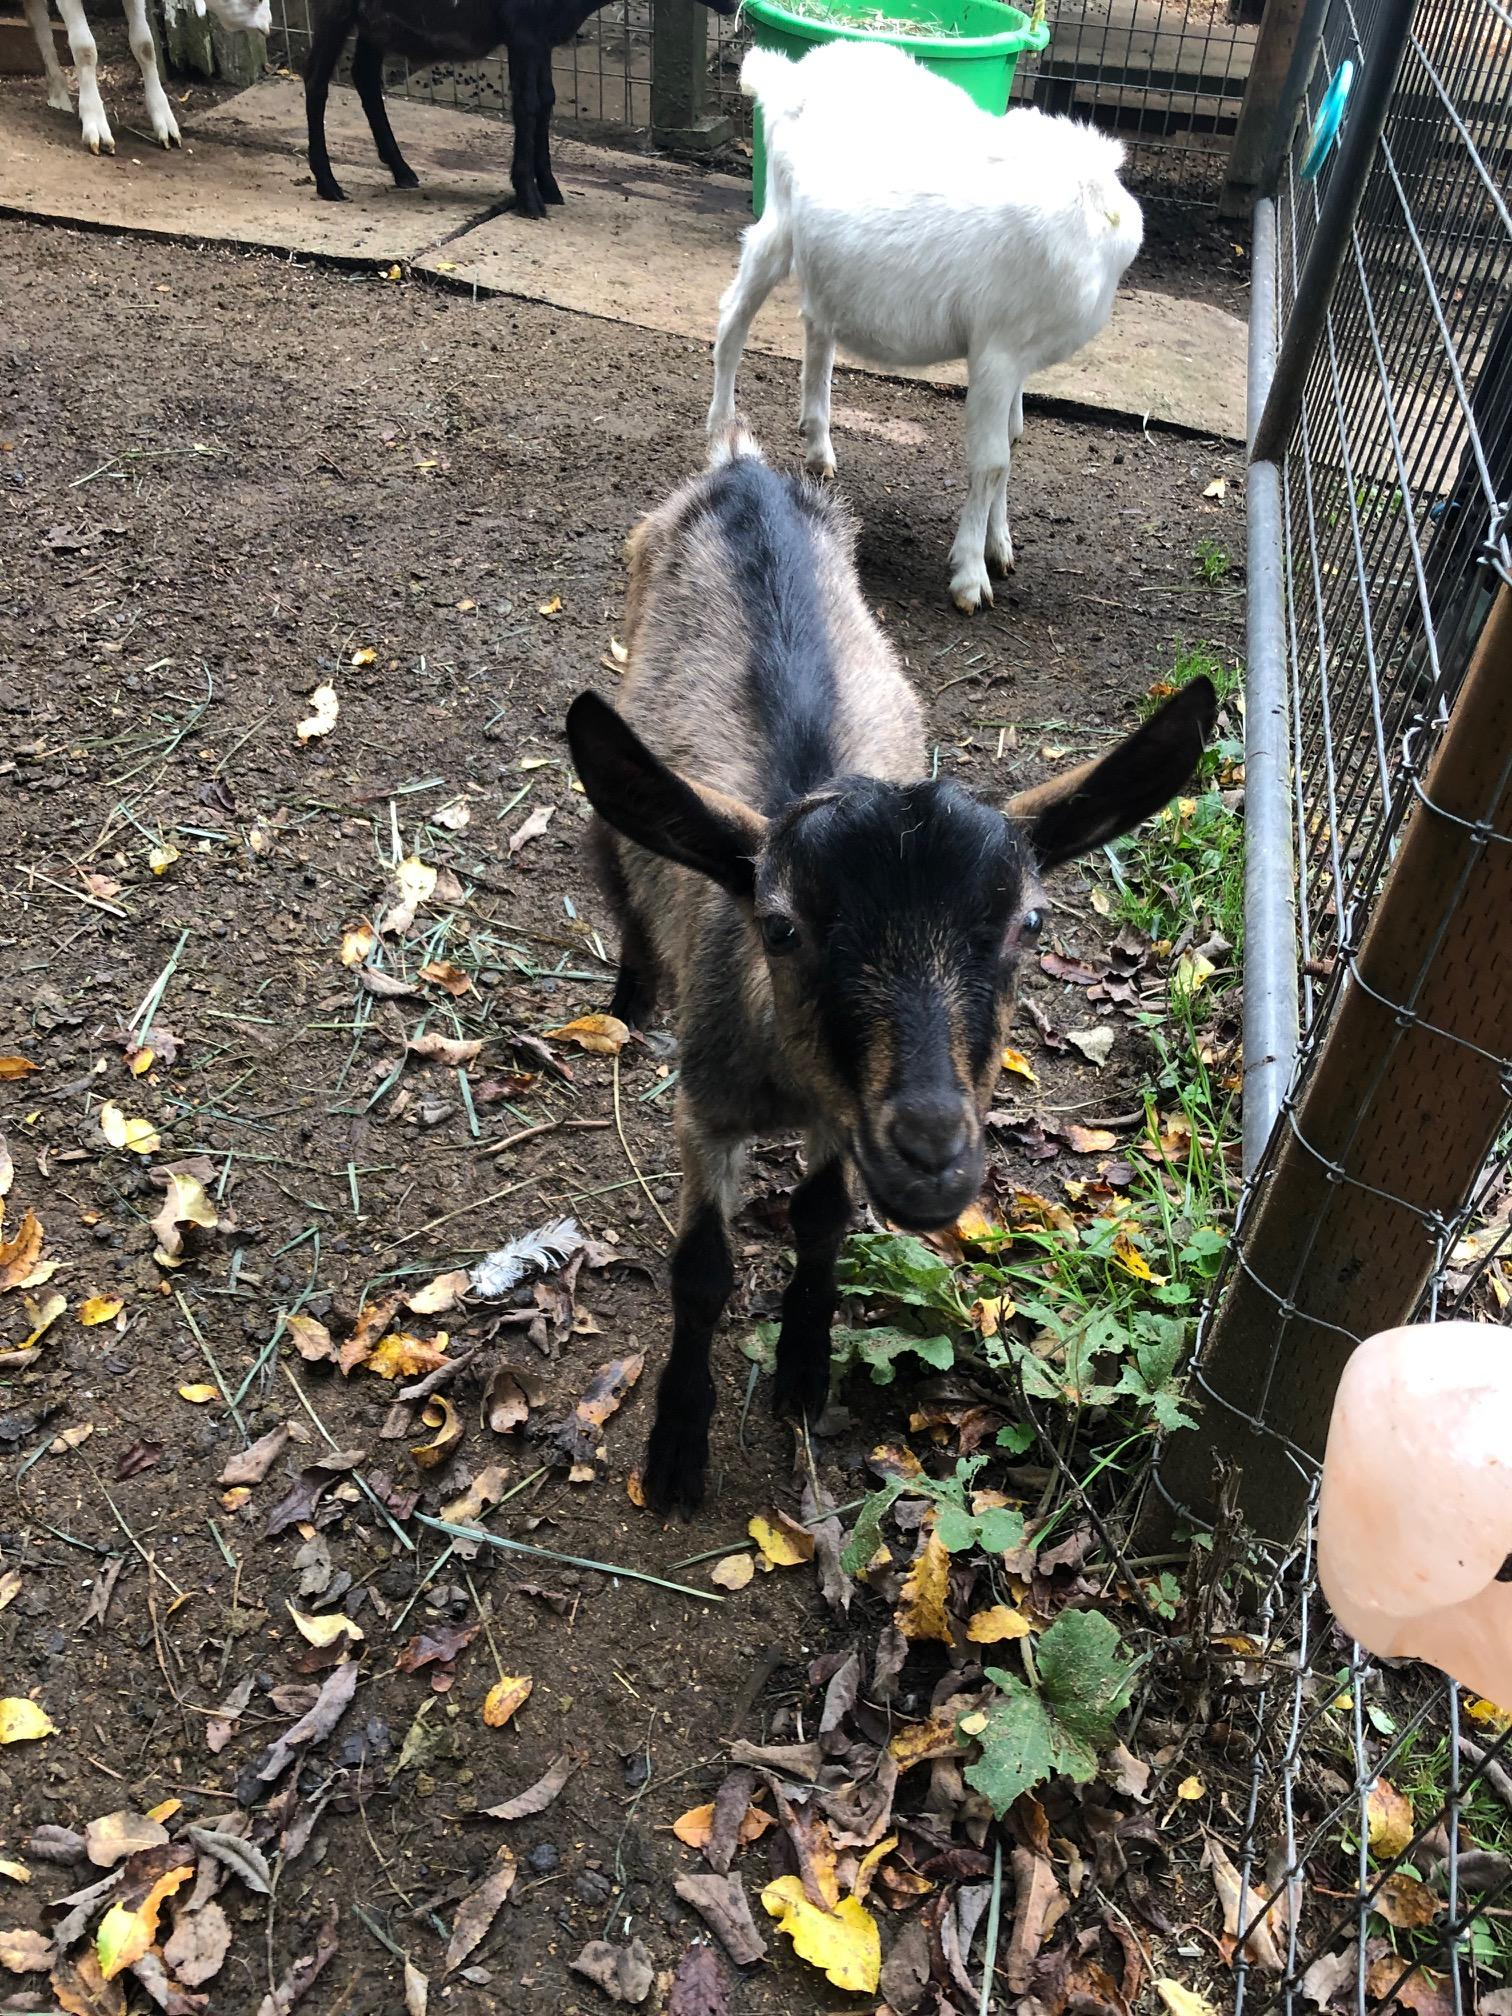 Puget Sound Goat Rescue has helped 3,500 goats over the past 20 years. (Image: Seattle Refined)